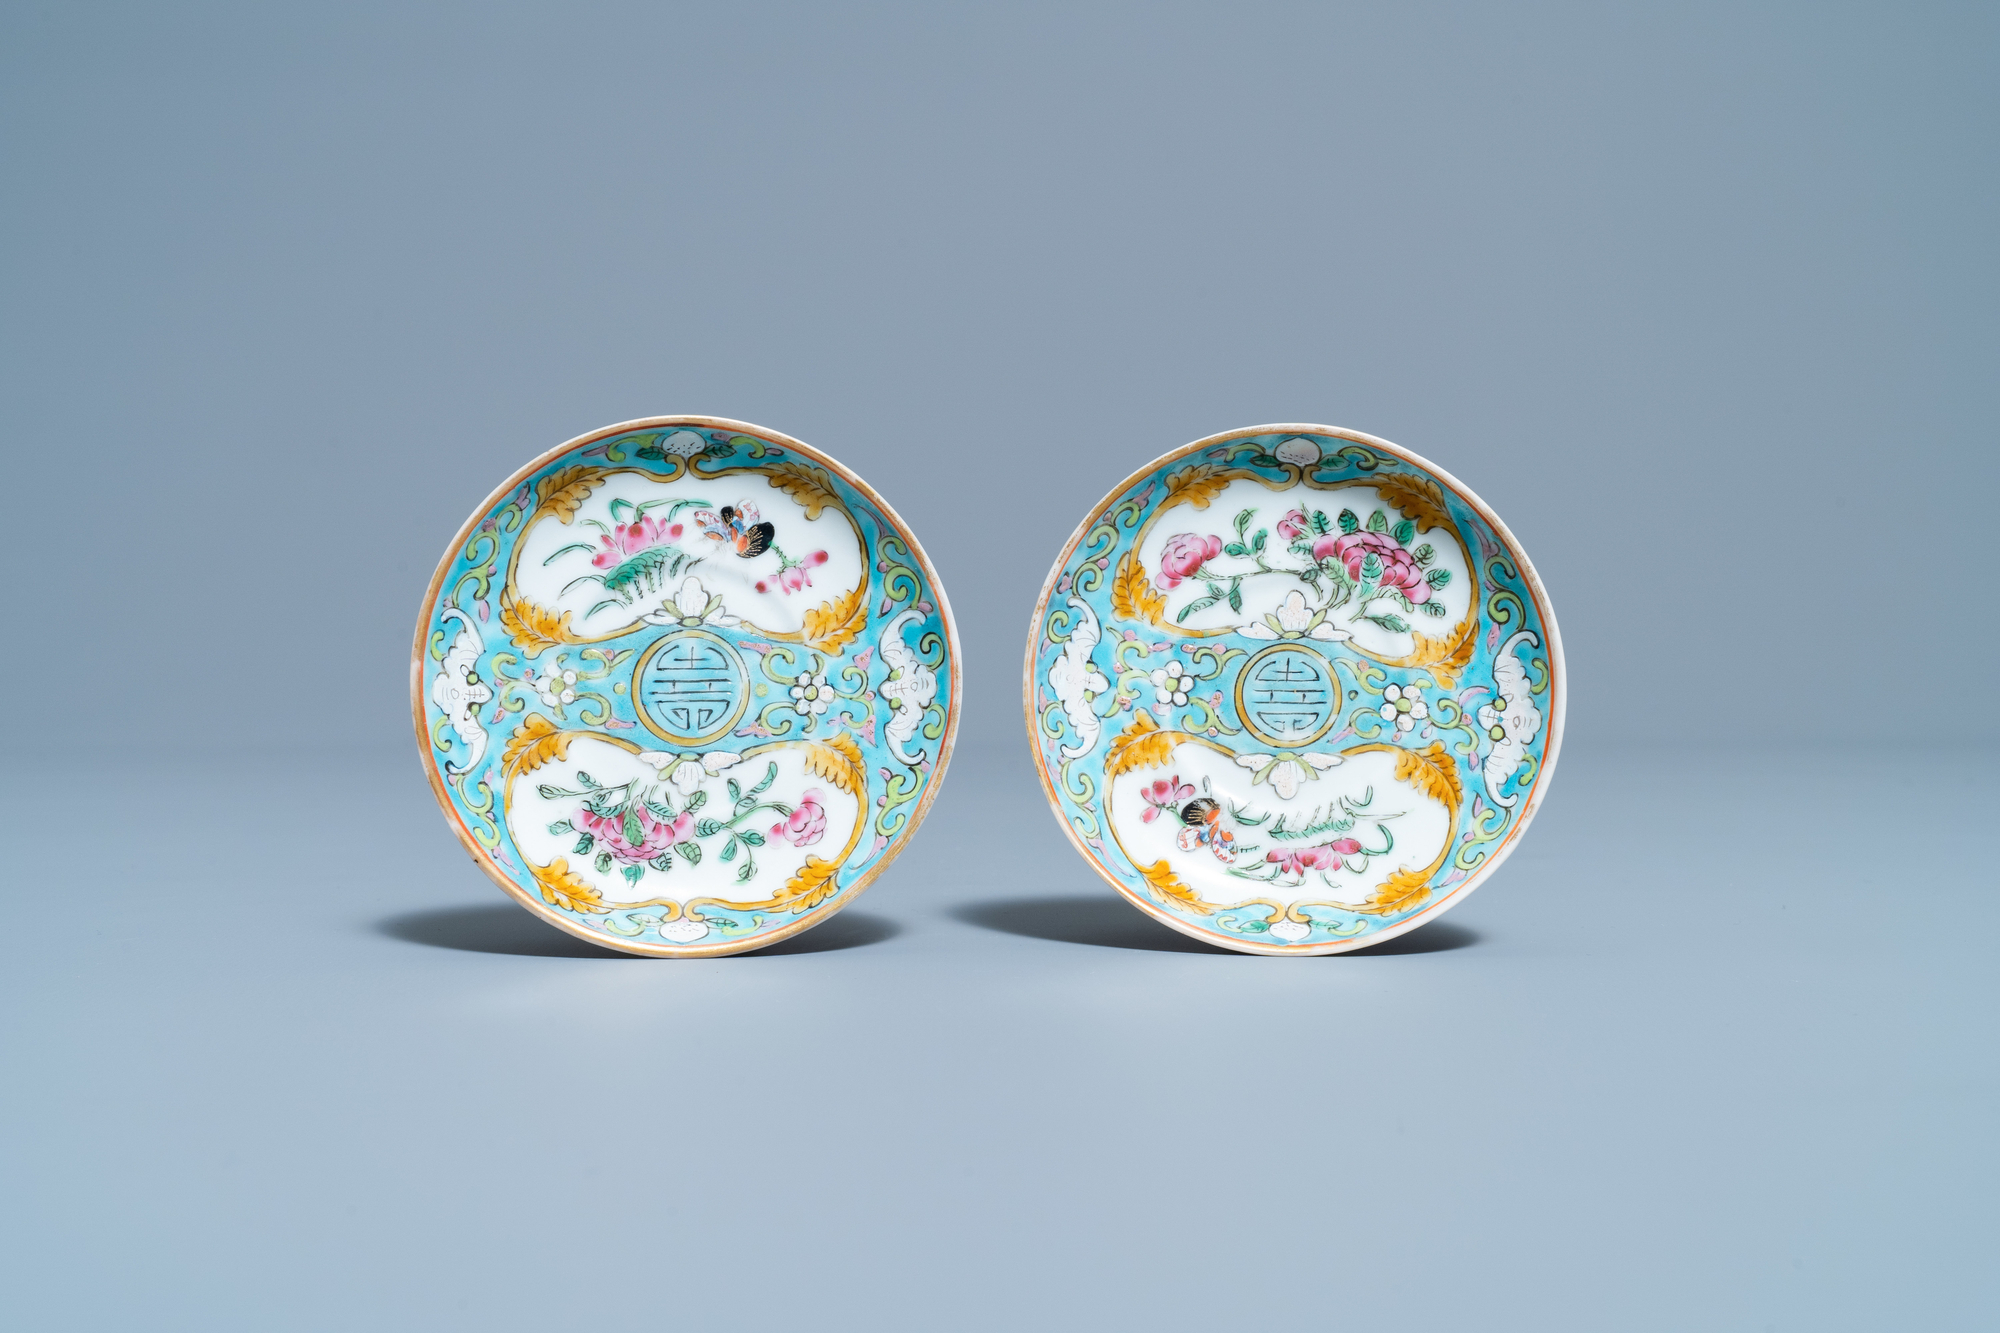 A Chinese famille rose 'tete-a-tete' tea service on tray, 19th C. - Image 4 of 10